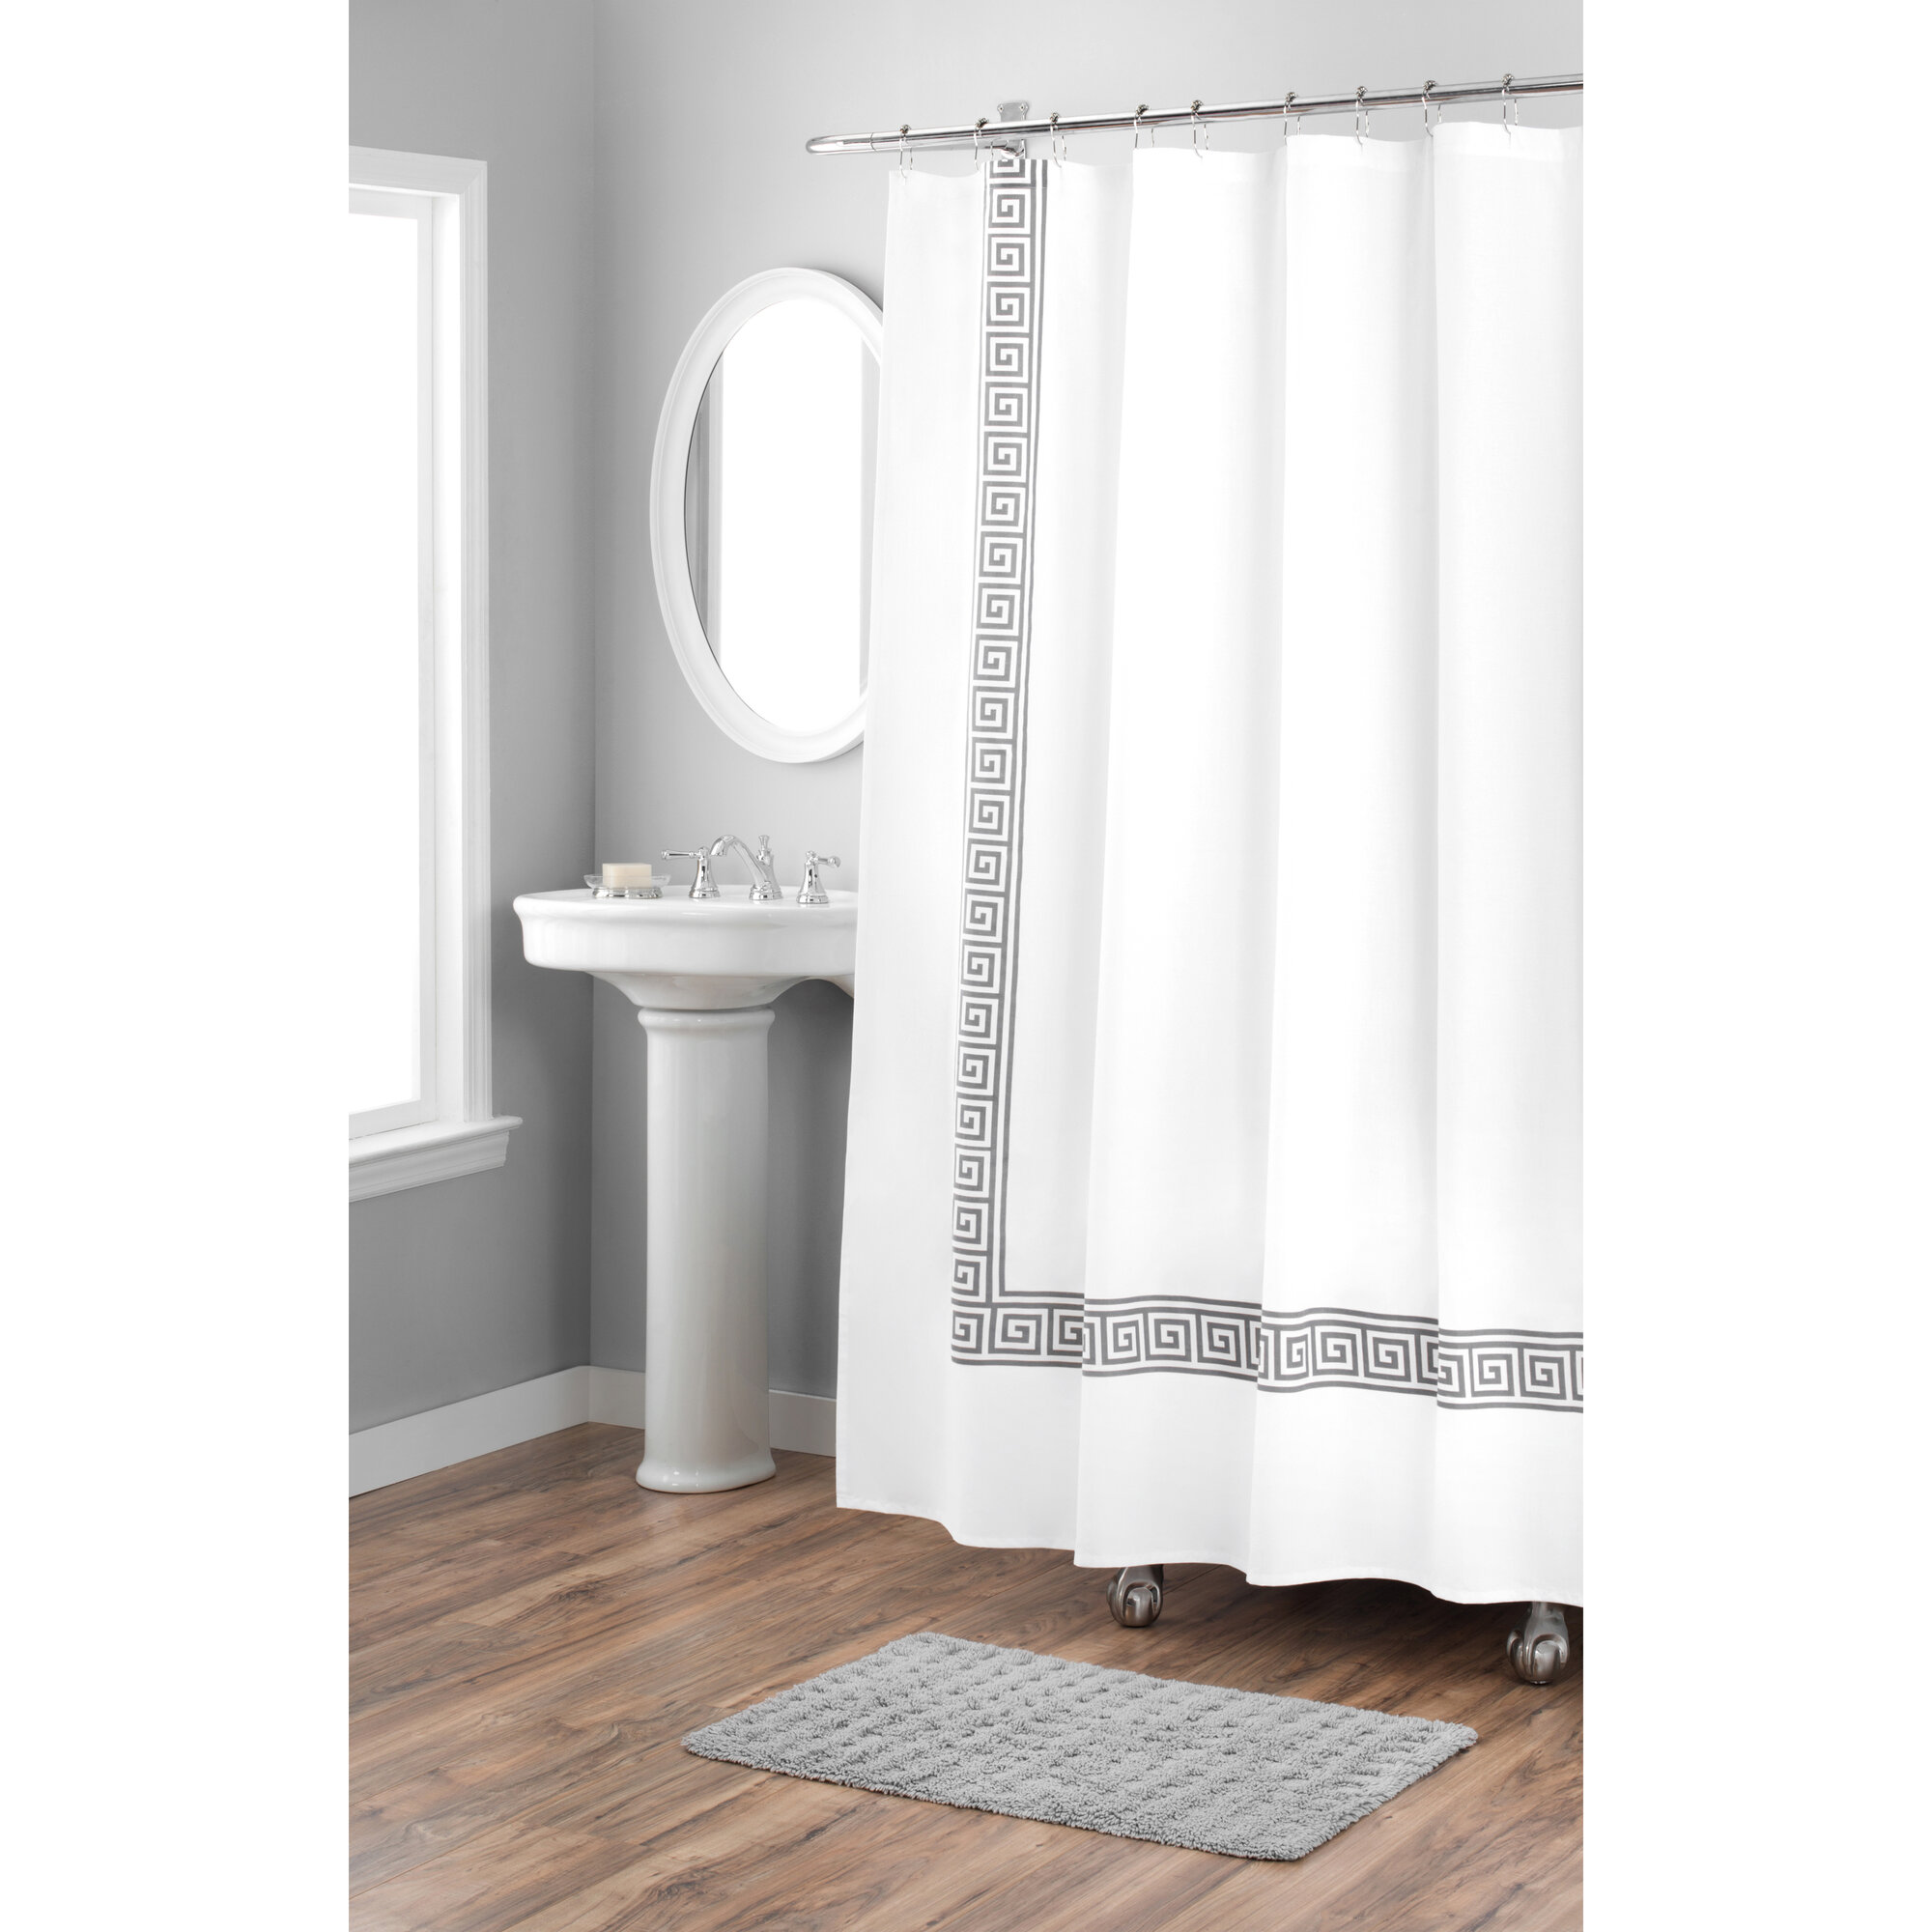 Details About Nicole Miller Greek Key Cotton Single Shower Curtain